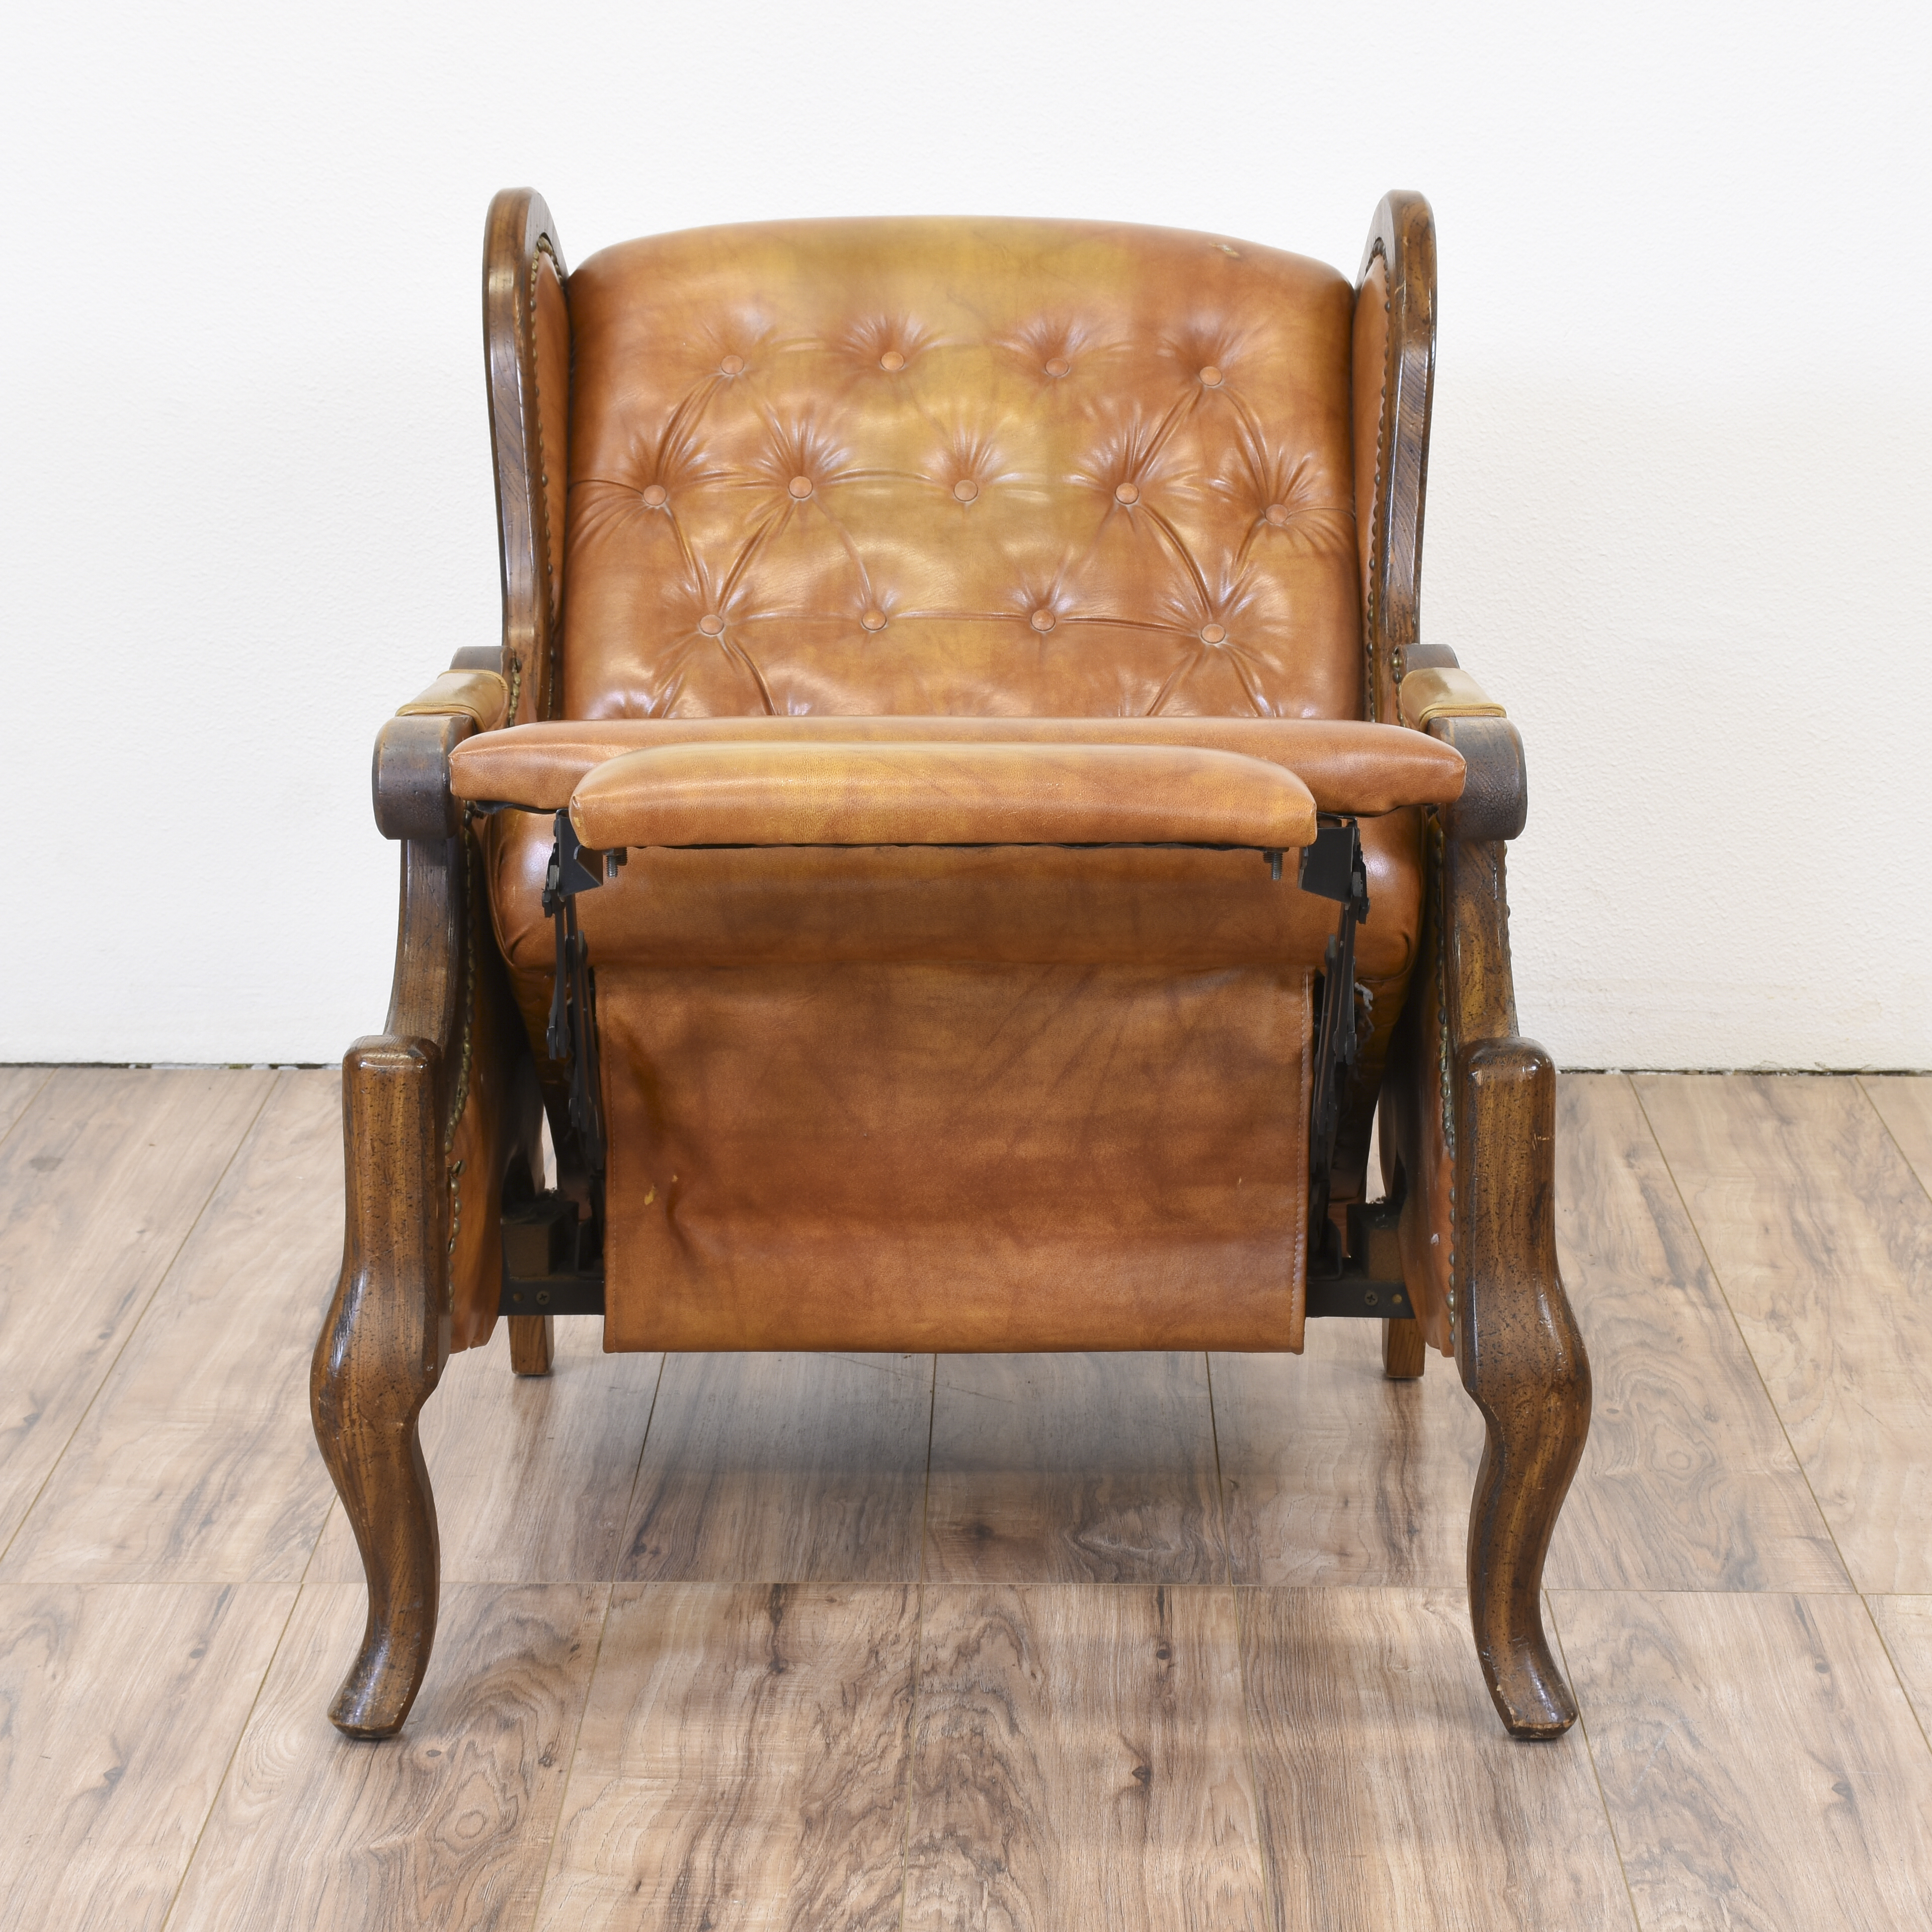 wing chair recliner leather dark teal covers tufted back loveseat vintage